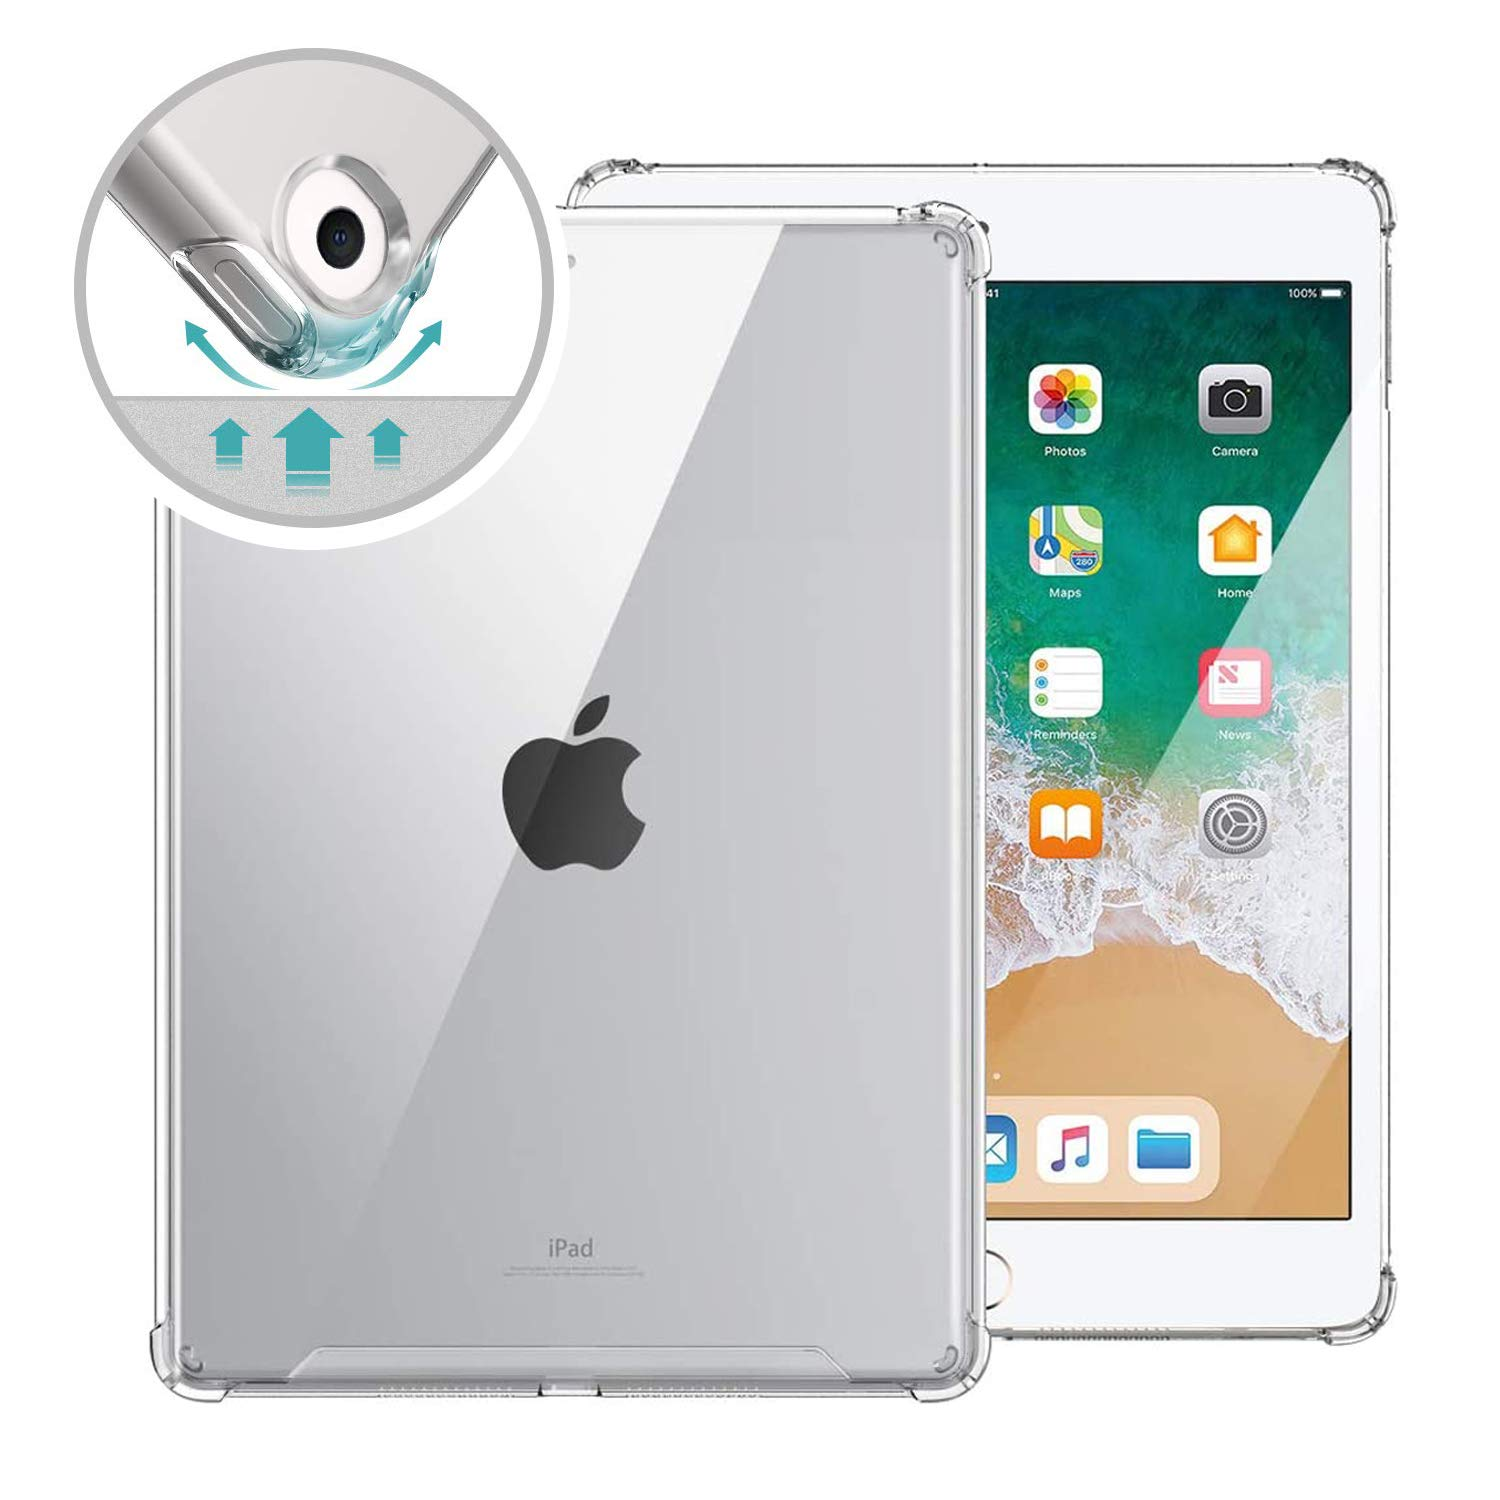 ORIbox Clear Case for iPad 6th 9.7''(2018)/ 5th 9.7''(2017)/Air 2nd 9.7''(2014)/Air 1st 9.7''(2013),Clear TPU Back Cover for iPad,9.7 inch,Clear